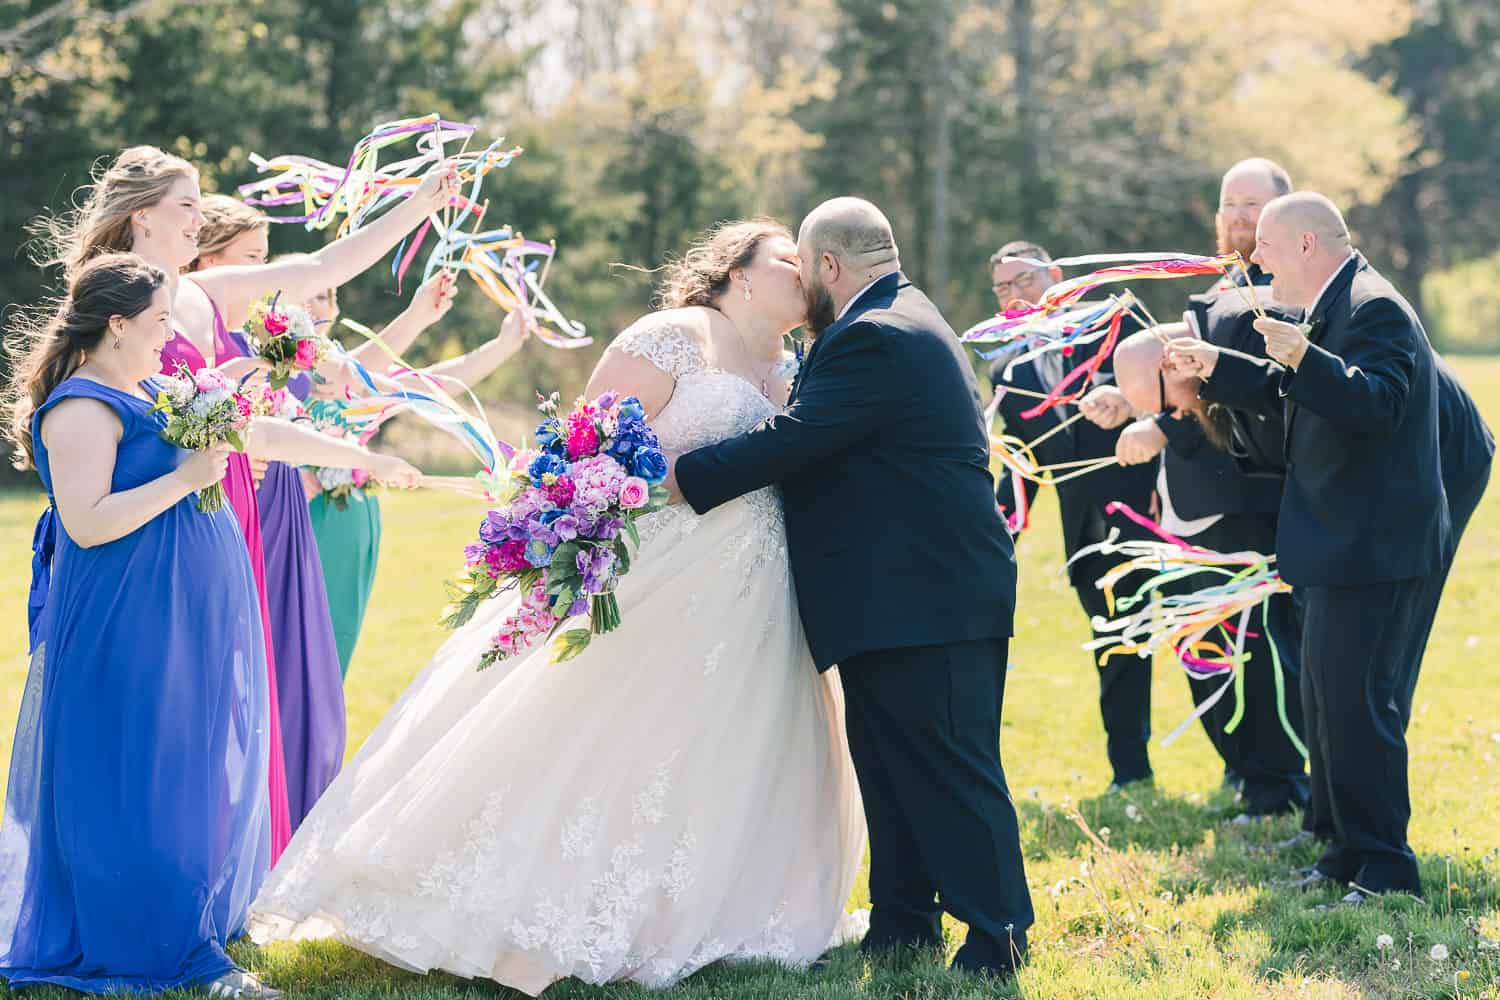 Wedding party photos with streamers